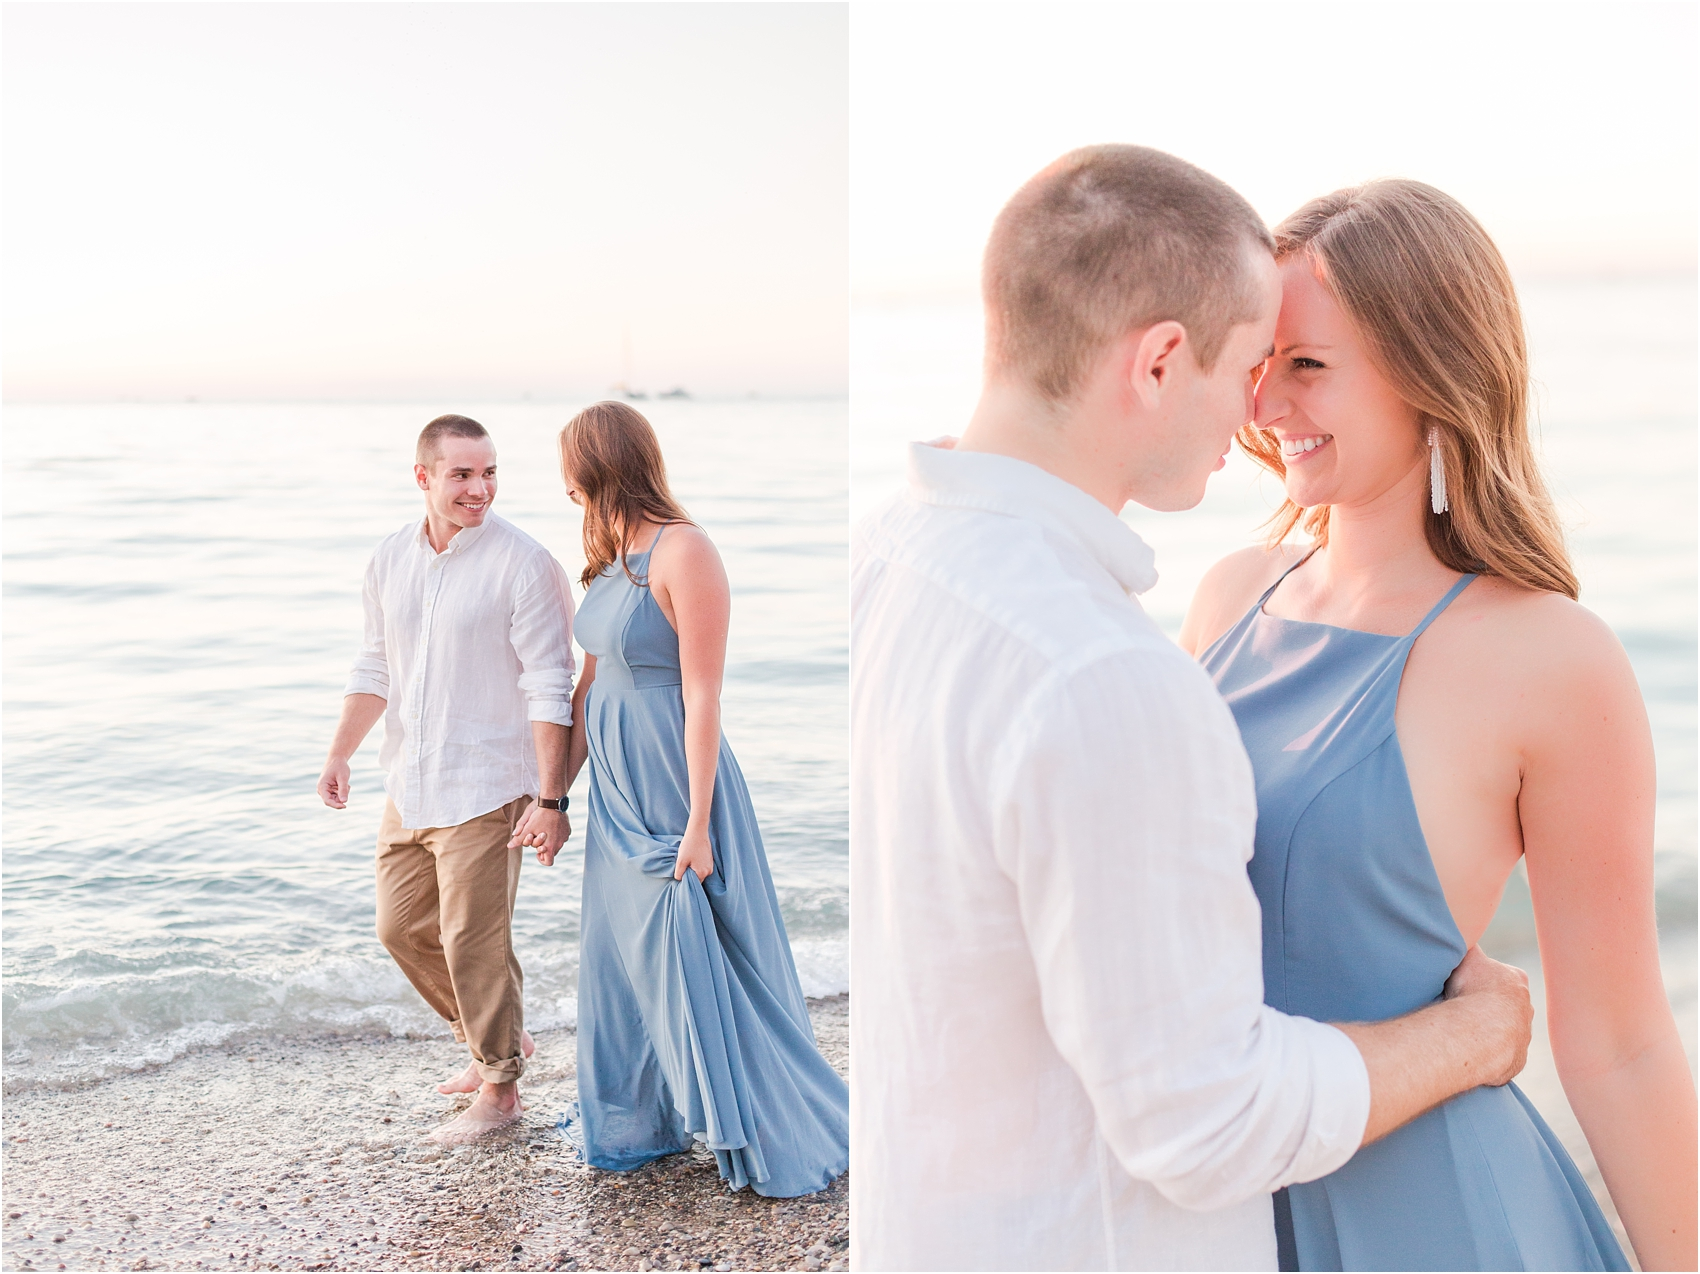 romantic-sunset-engagement-photos-at-michigan-beach-park-in-charlevoix-mi-by-courtney-carolyn-photography_0009.jpg